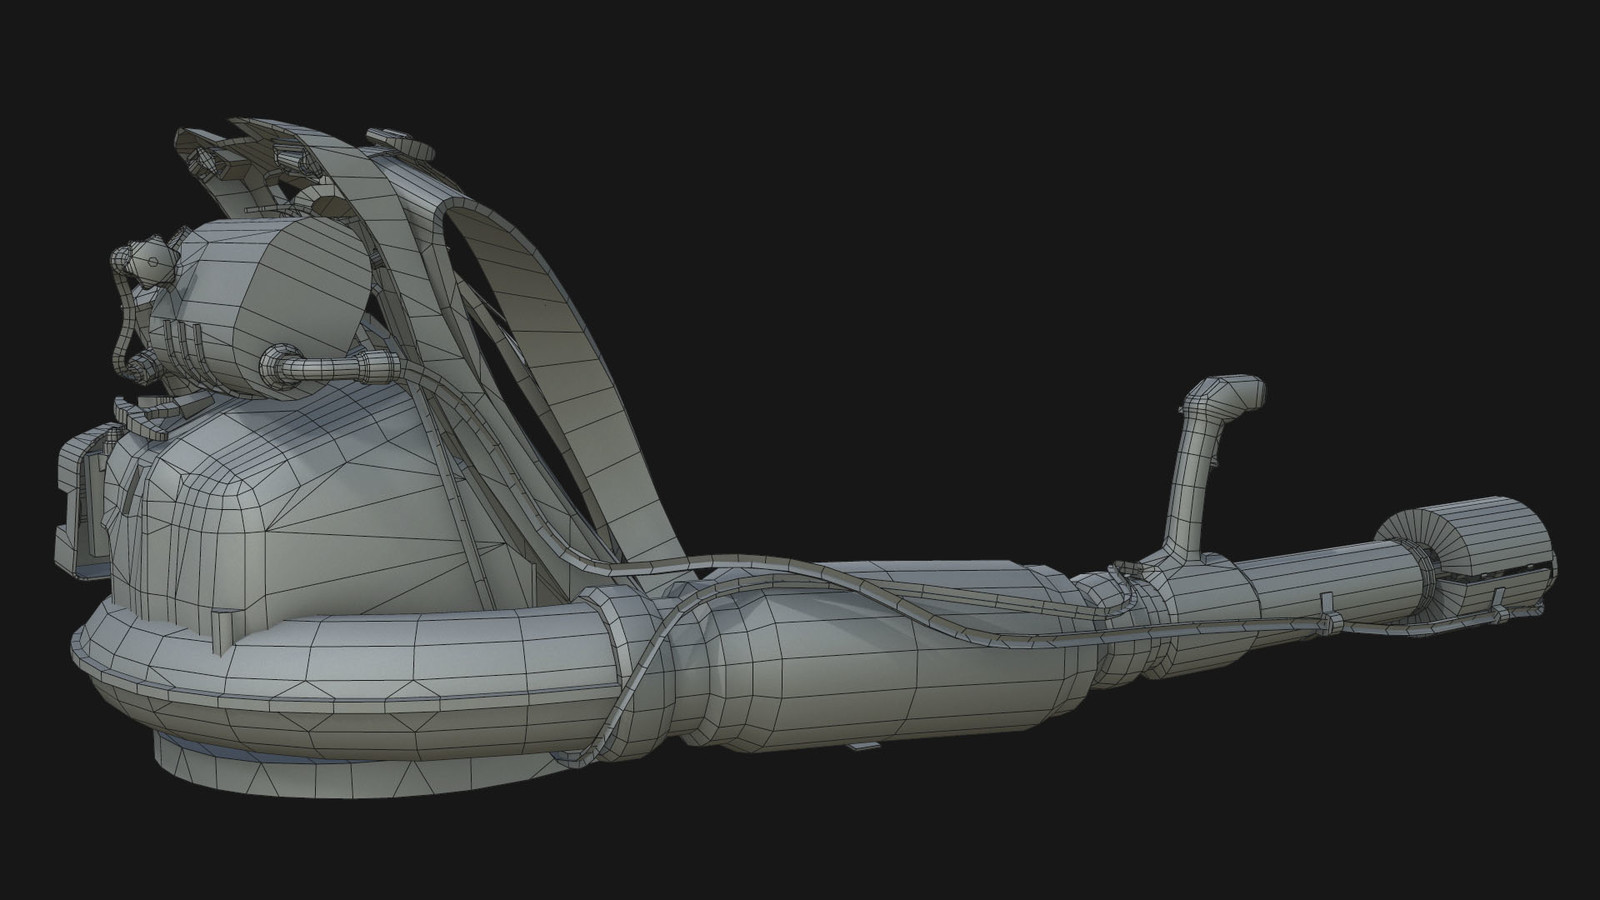 low poly topology- 16k tris